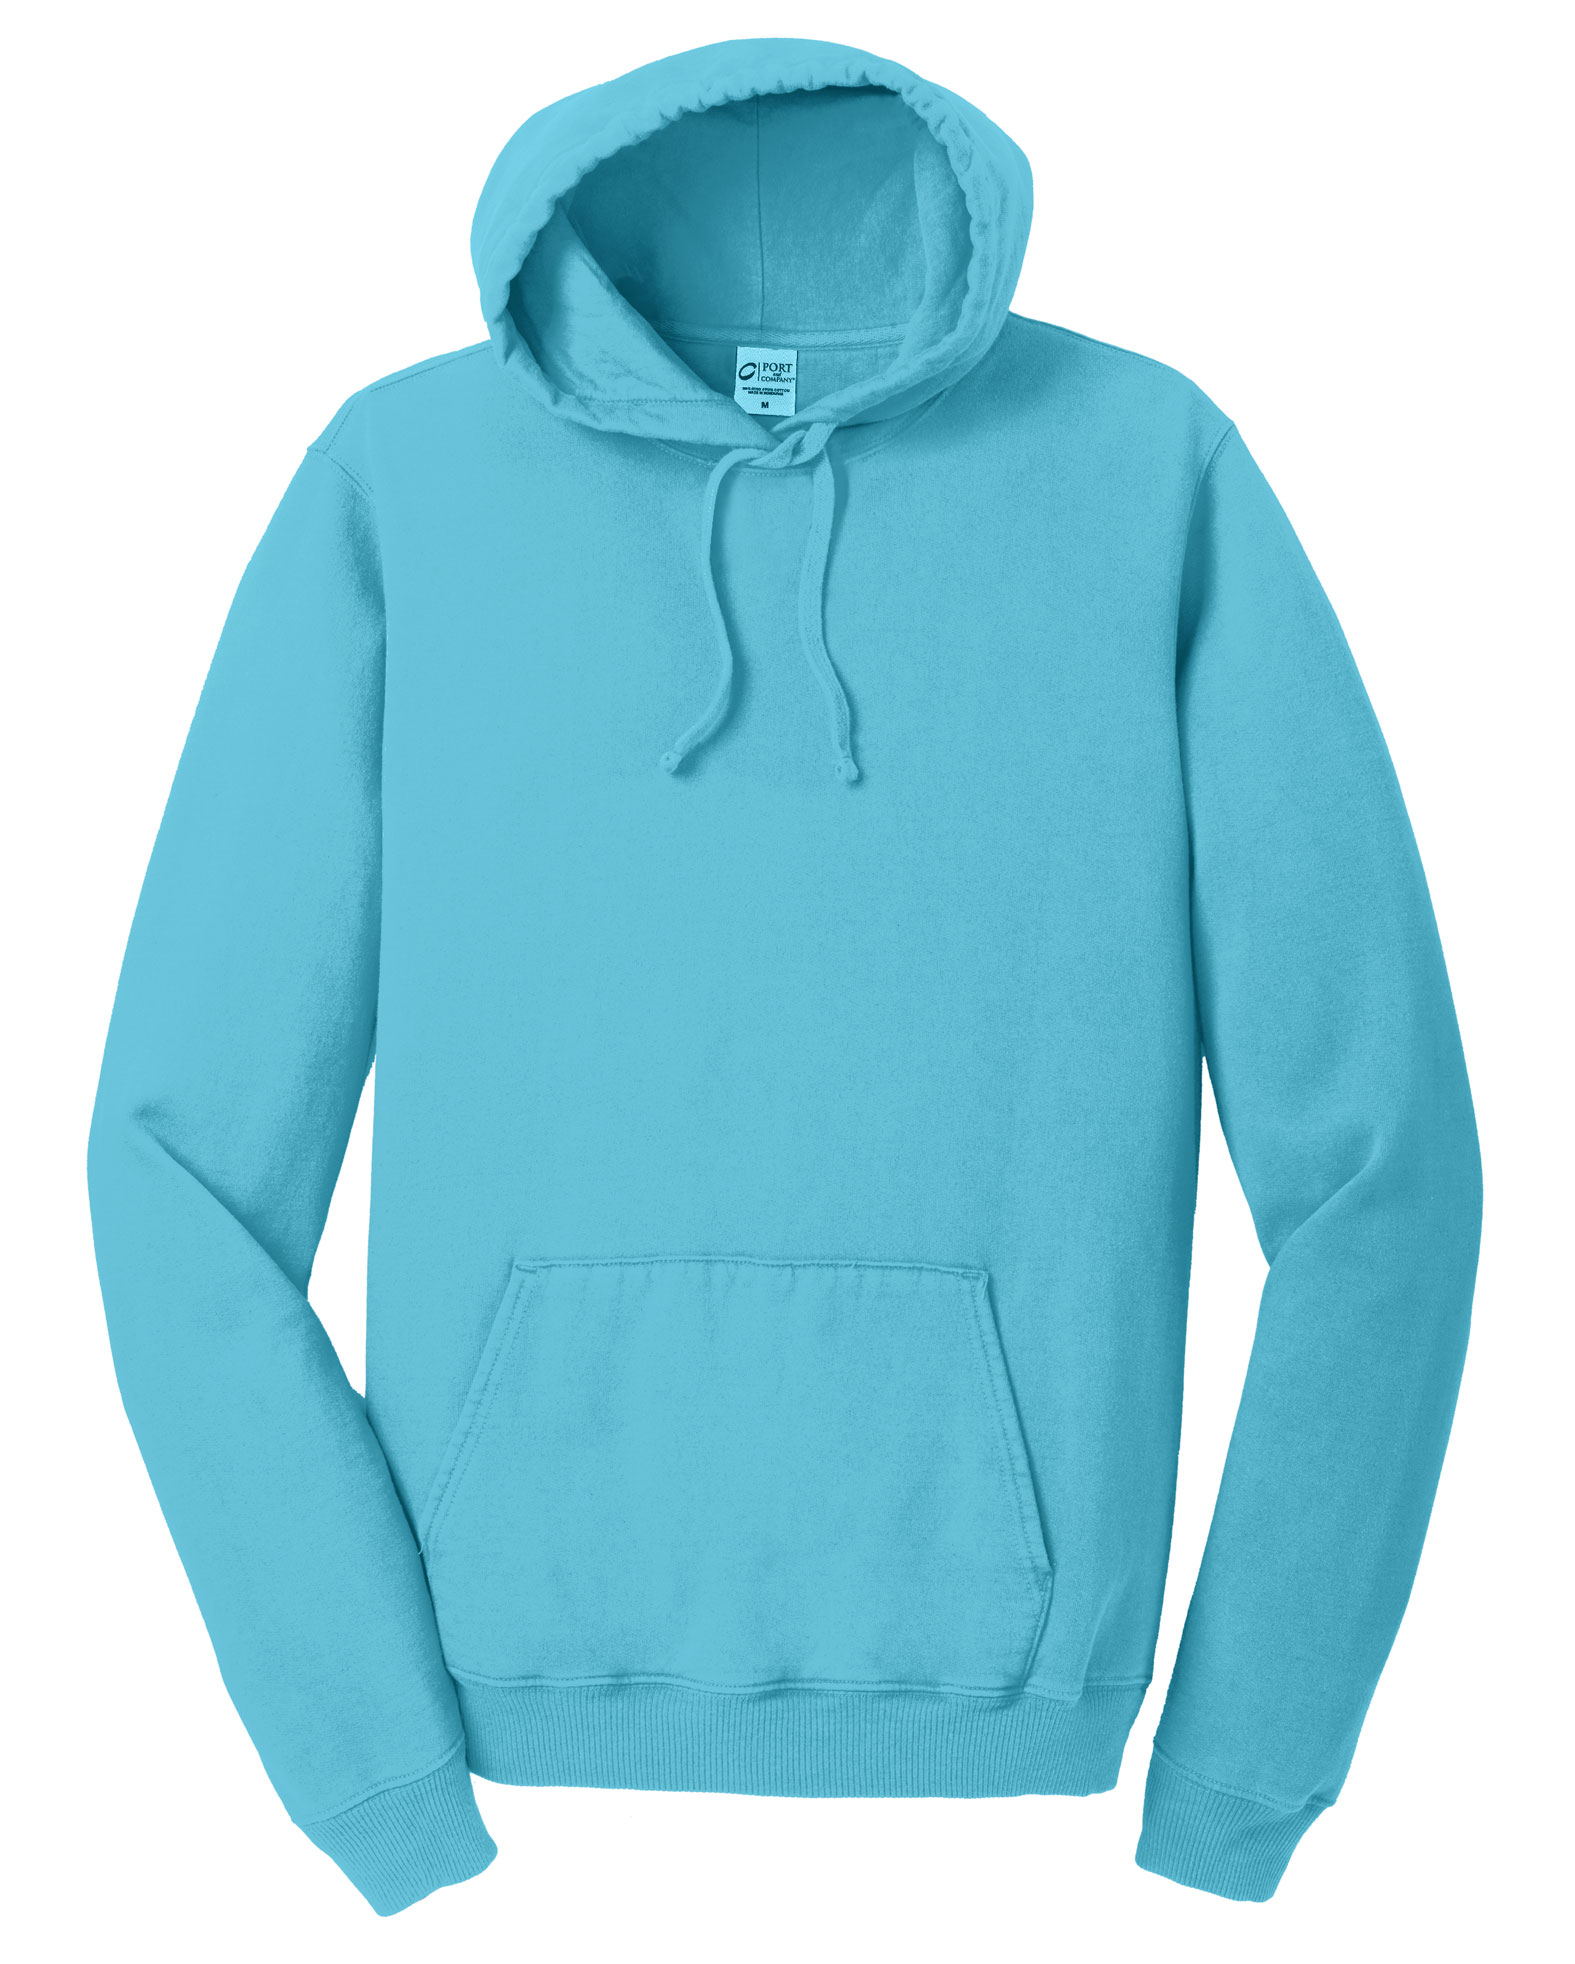 Mens Essential Pigment-Dyed Pullover Hooded Sweatshirt